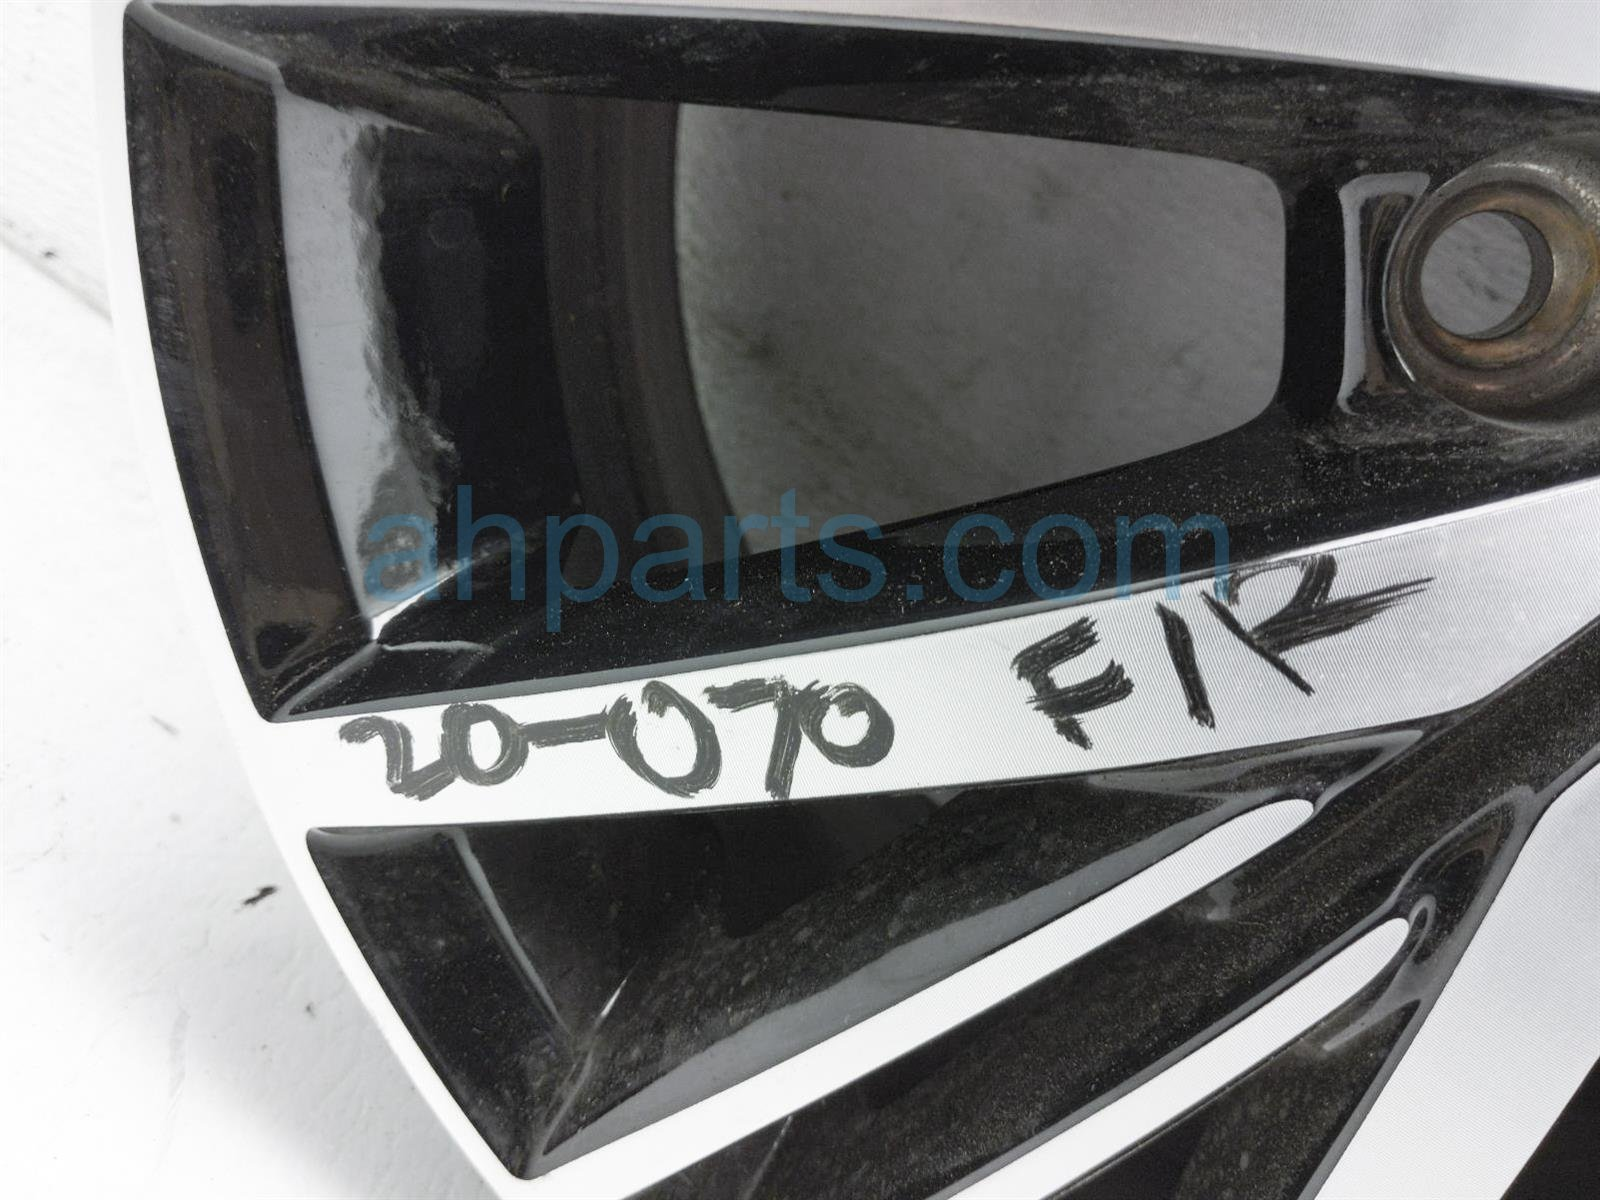 2018 Volkswagen Jetta Front Passenger Wheel/rim 5C0 601 025 BP FZZ Replacement